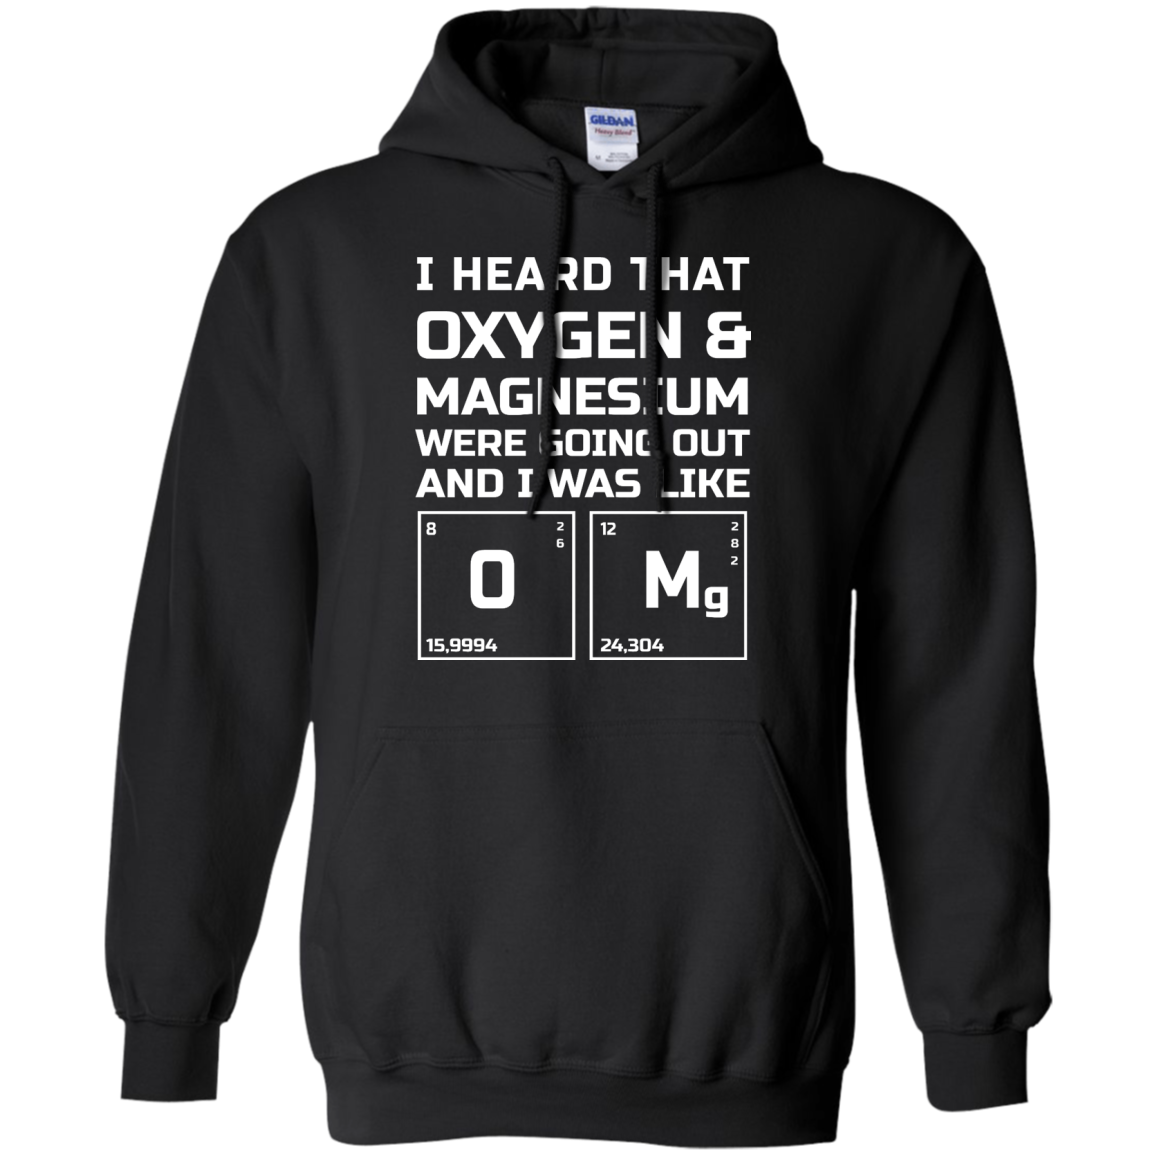 image 541px I Heard That Oxygen & Magnesium Were Going Out And I Was Like O Mg T Shirts